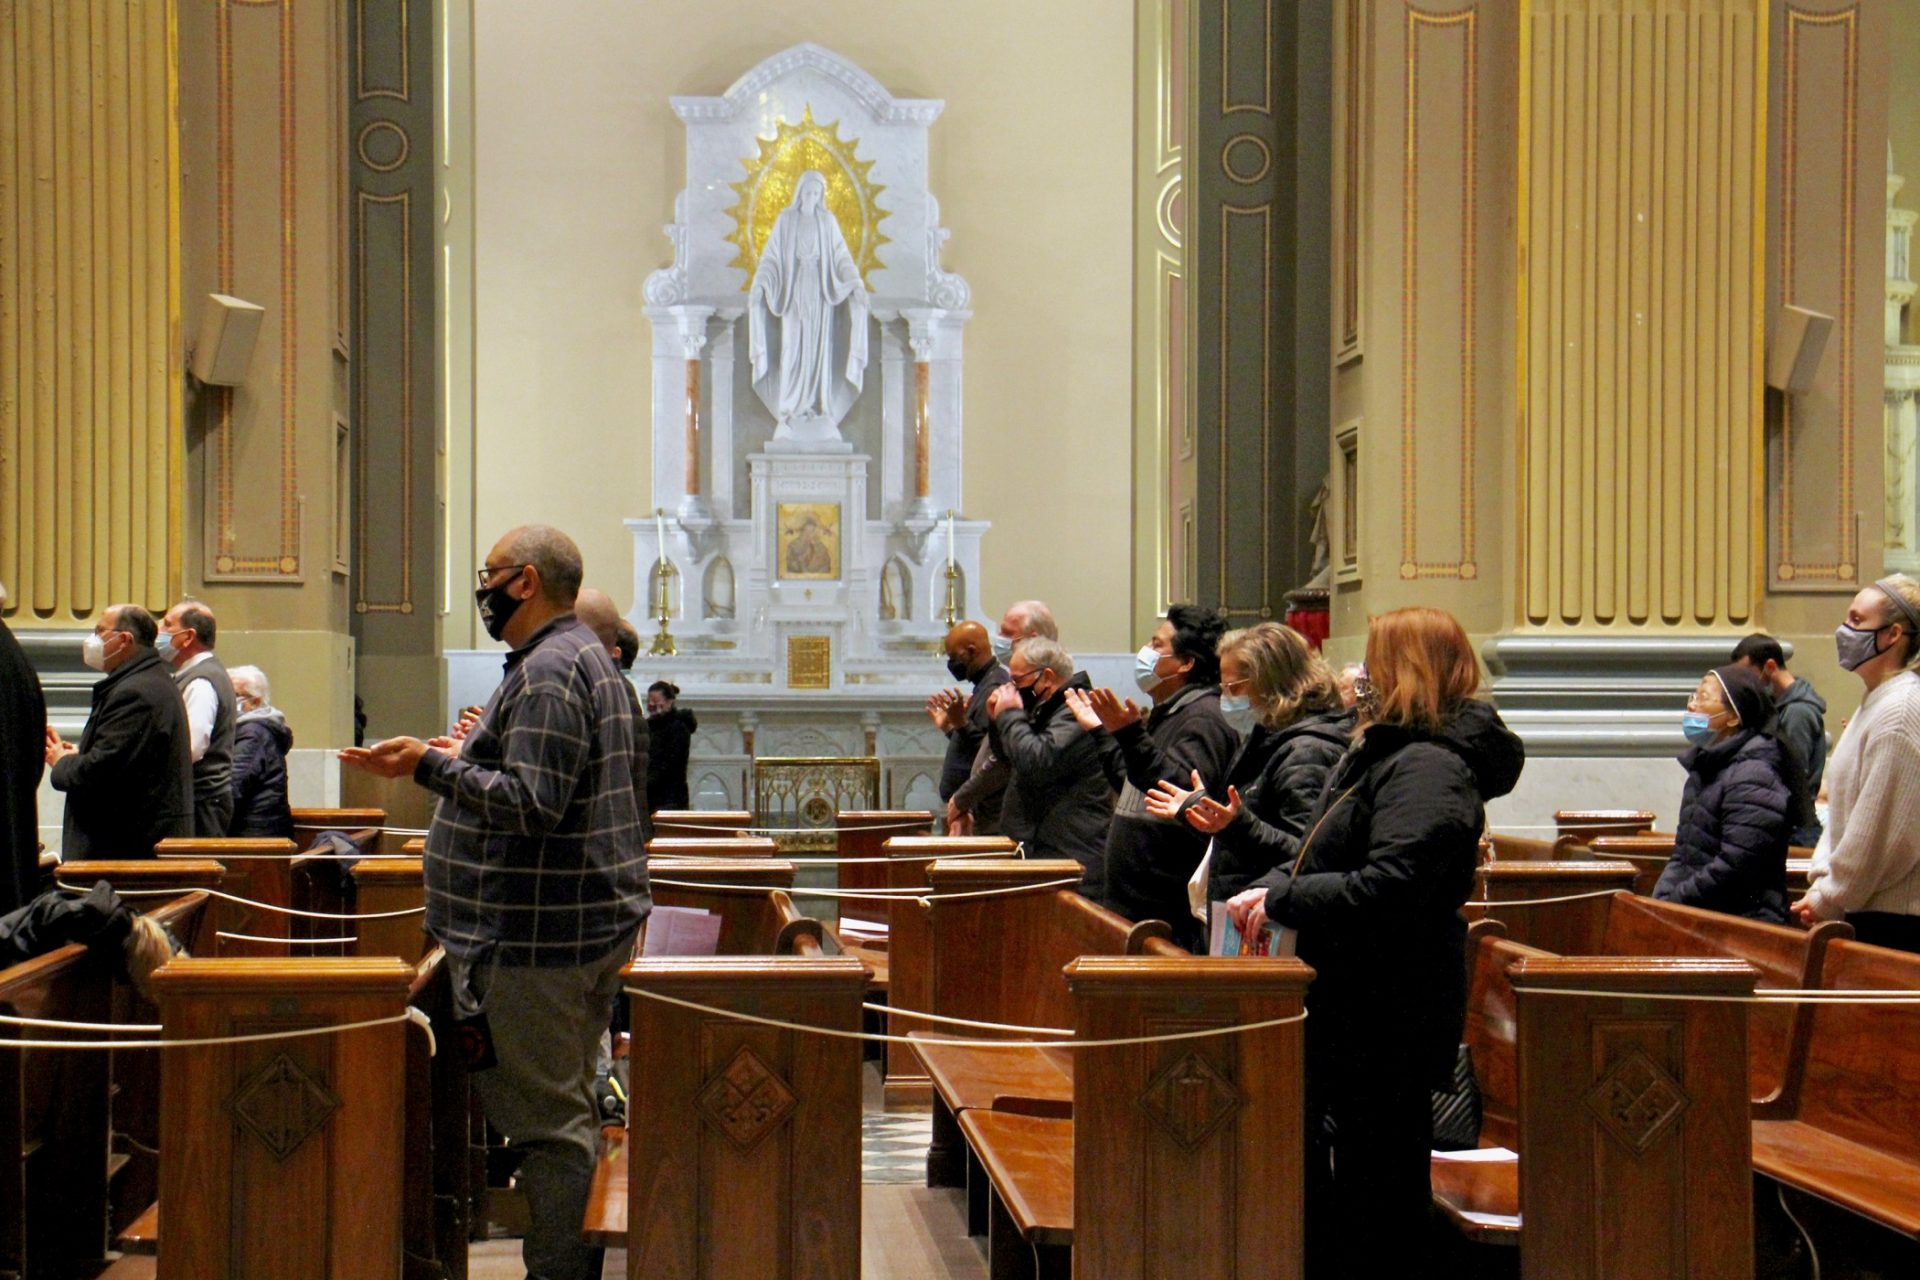 Seated in every other pew to create safe distances, parishioners pray during Ash Wednesday services at the Basilica of Saints Peter and Paul in Philadelphia